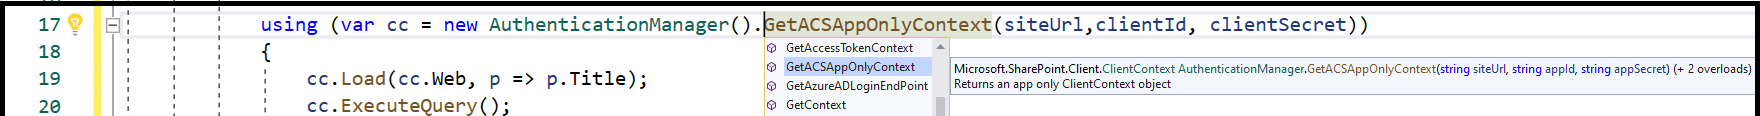 "M365 - SharePoint Online - CSOM - using ""PnP.Framework"" in .NET Core console application to get the SharePoint Online client context - AuthenticationManager.GetACSAppOnlyContext() returns SharePoint online Client Context - Microsoft.SharePoint.Client.ClientContext as"